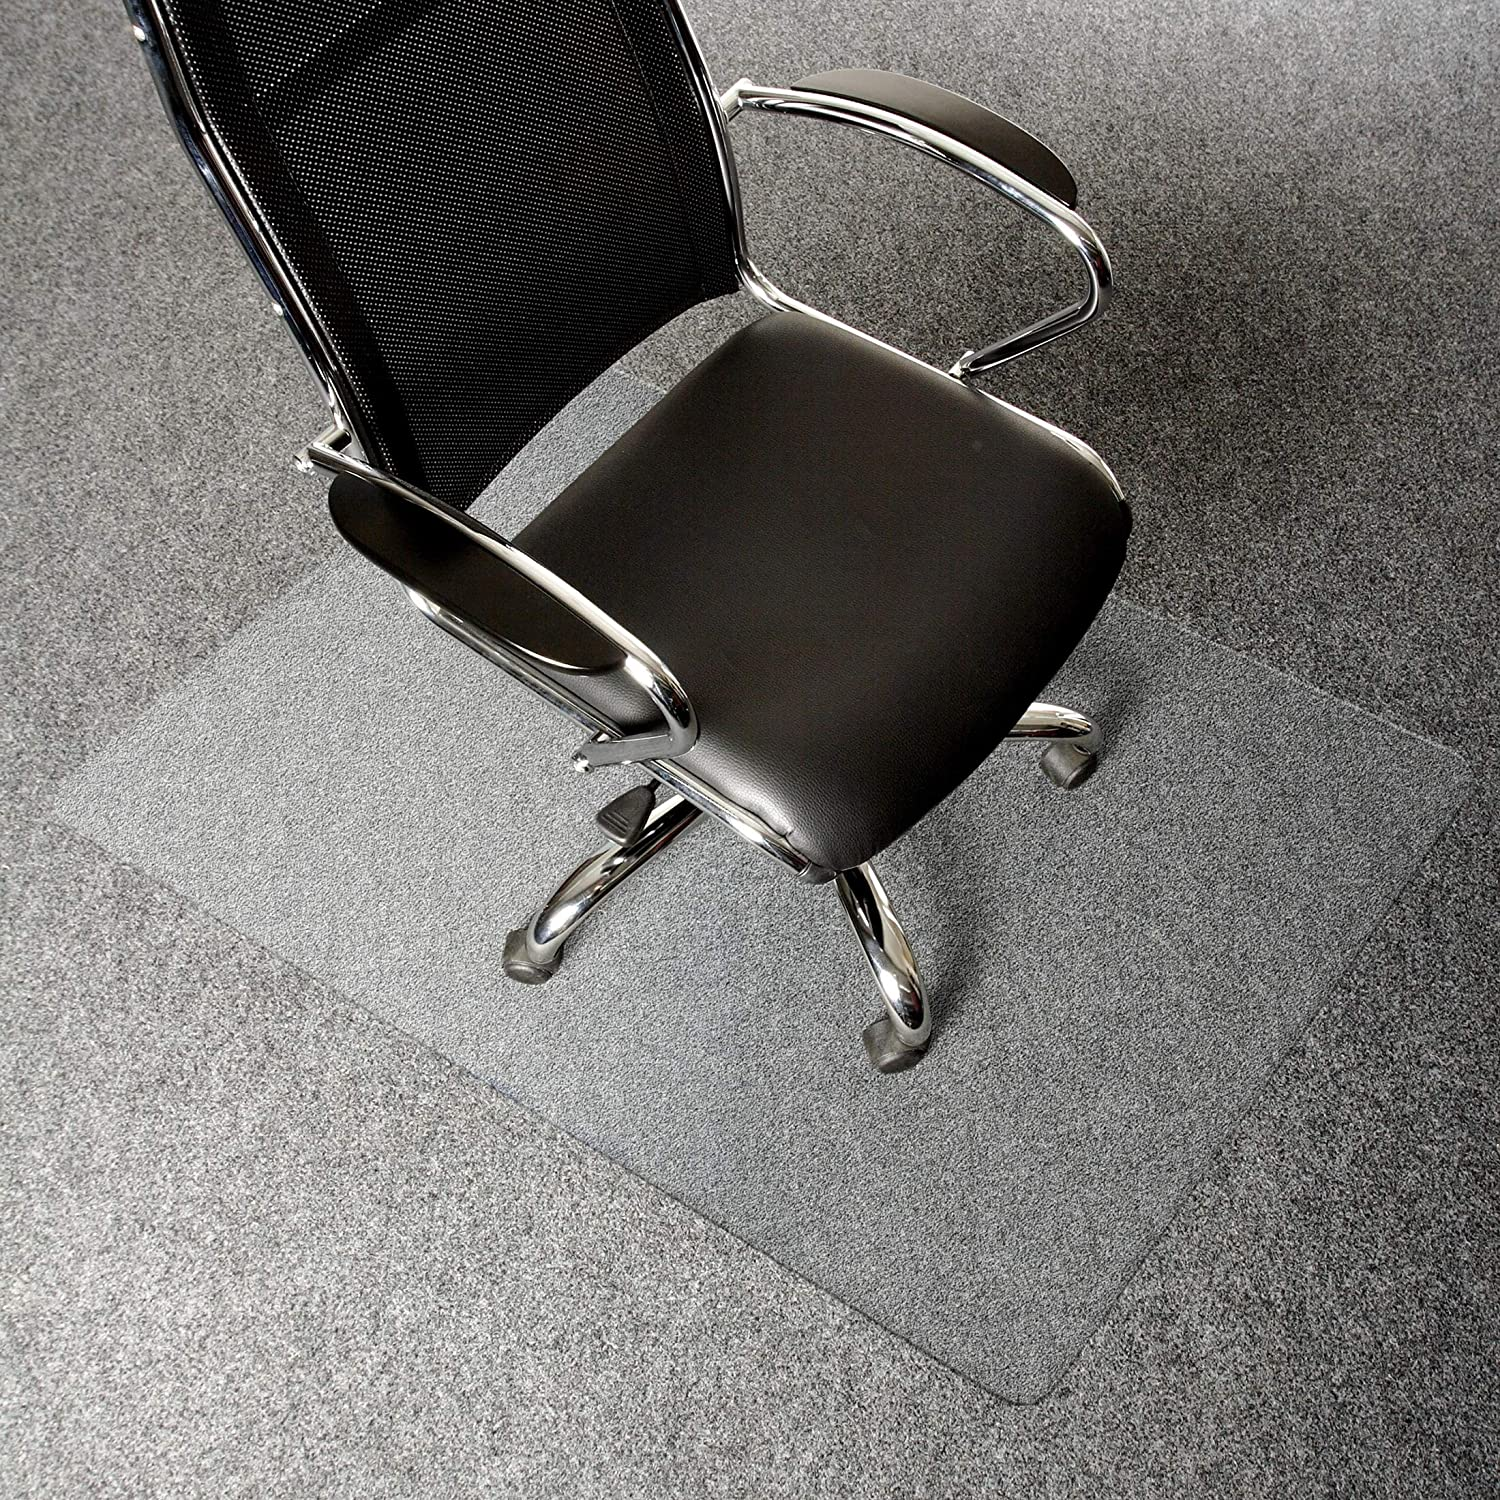 AmazonBasics Polycarbonate Office Carpet Chair Mat, for Low and Medium Pile Carpets, 30 x 47